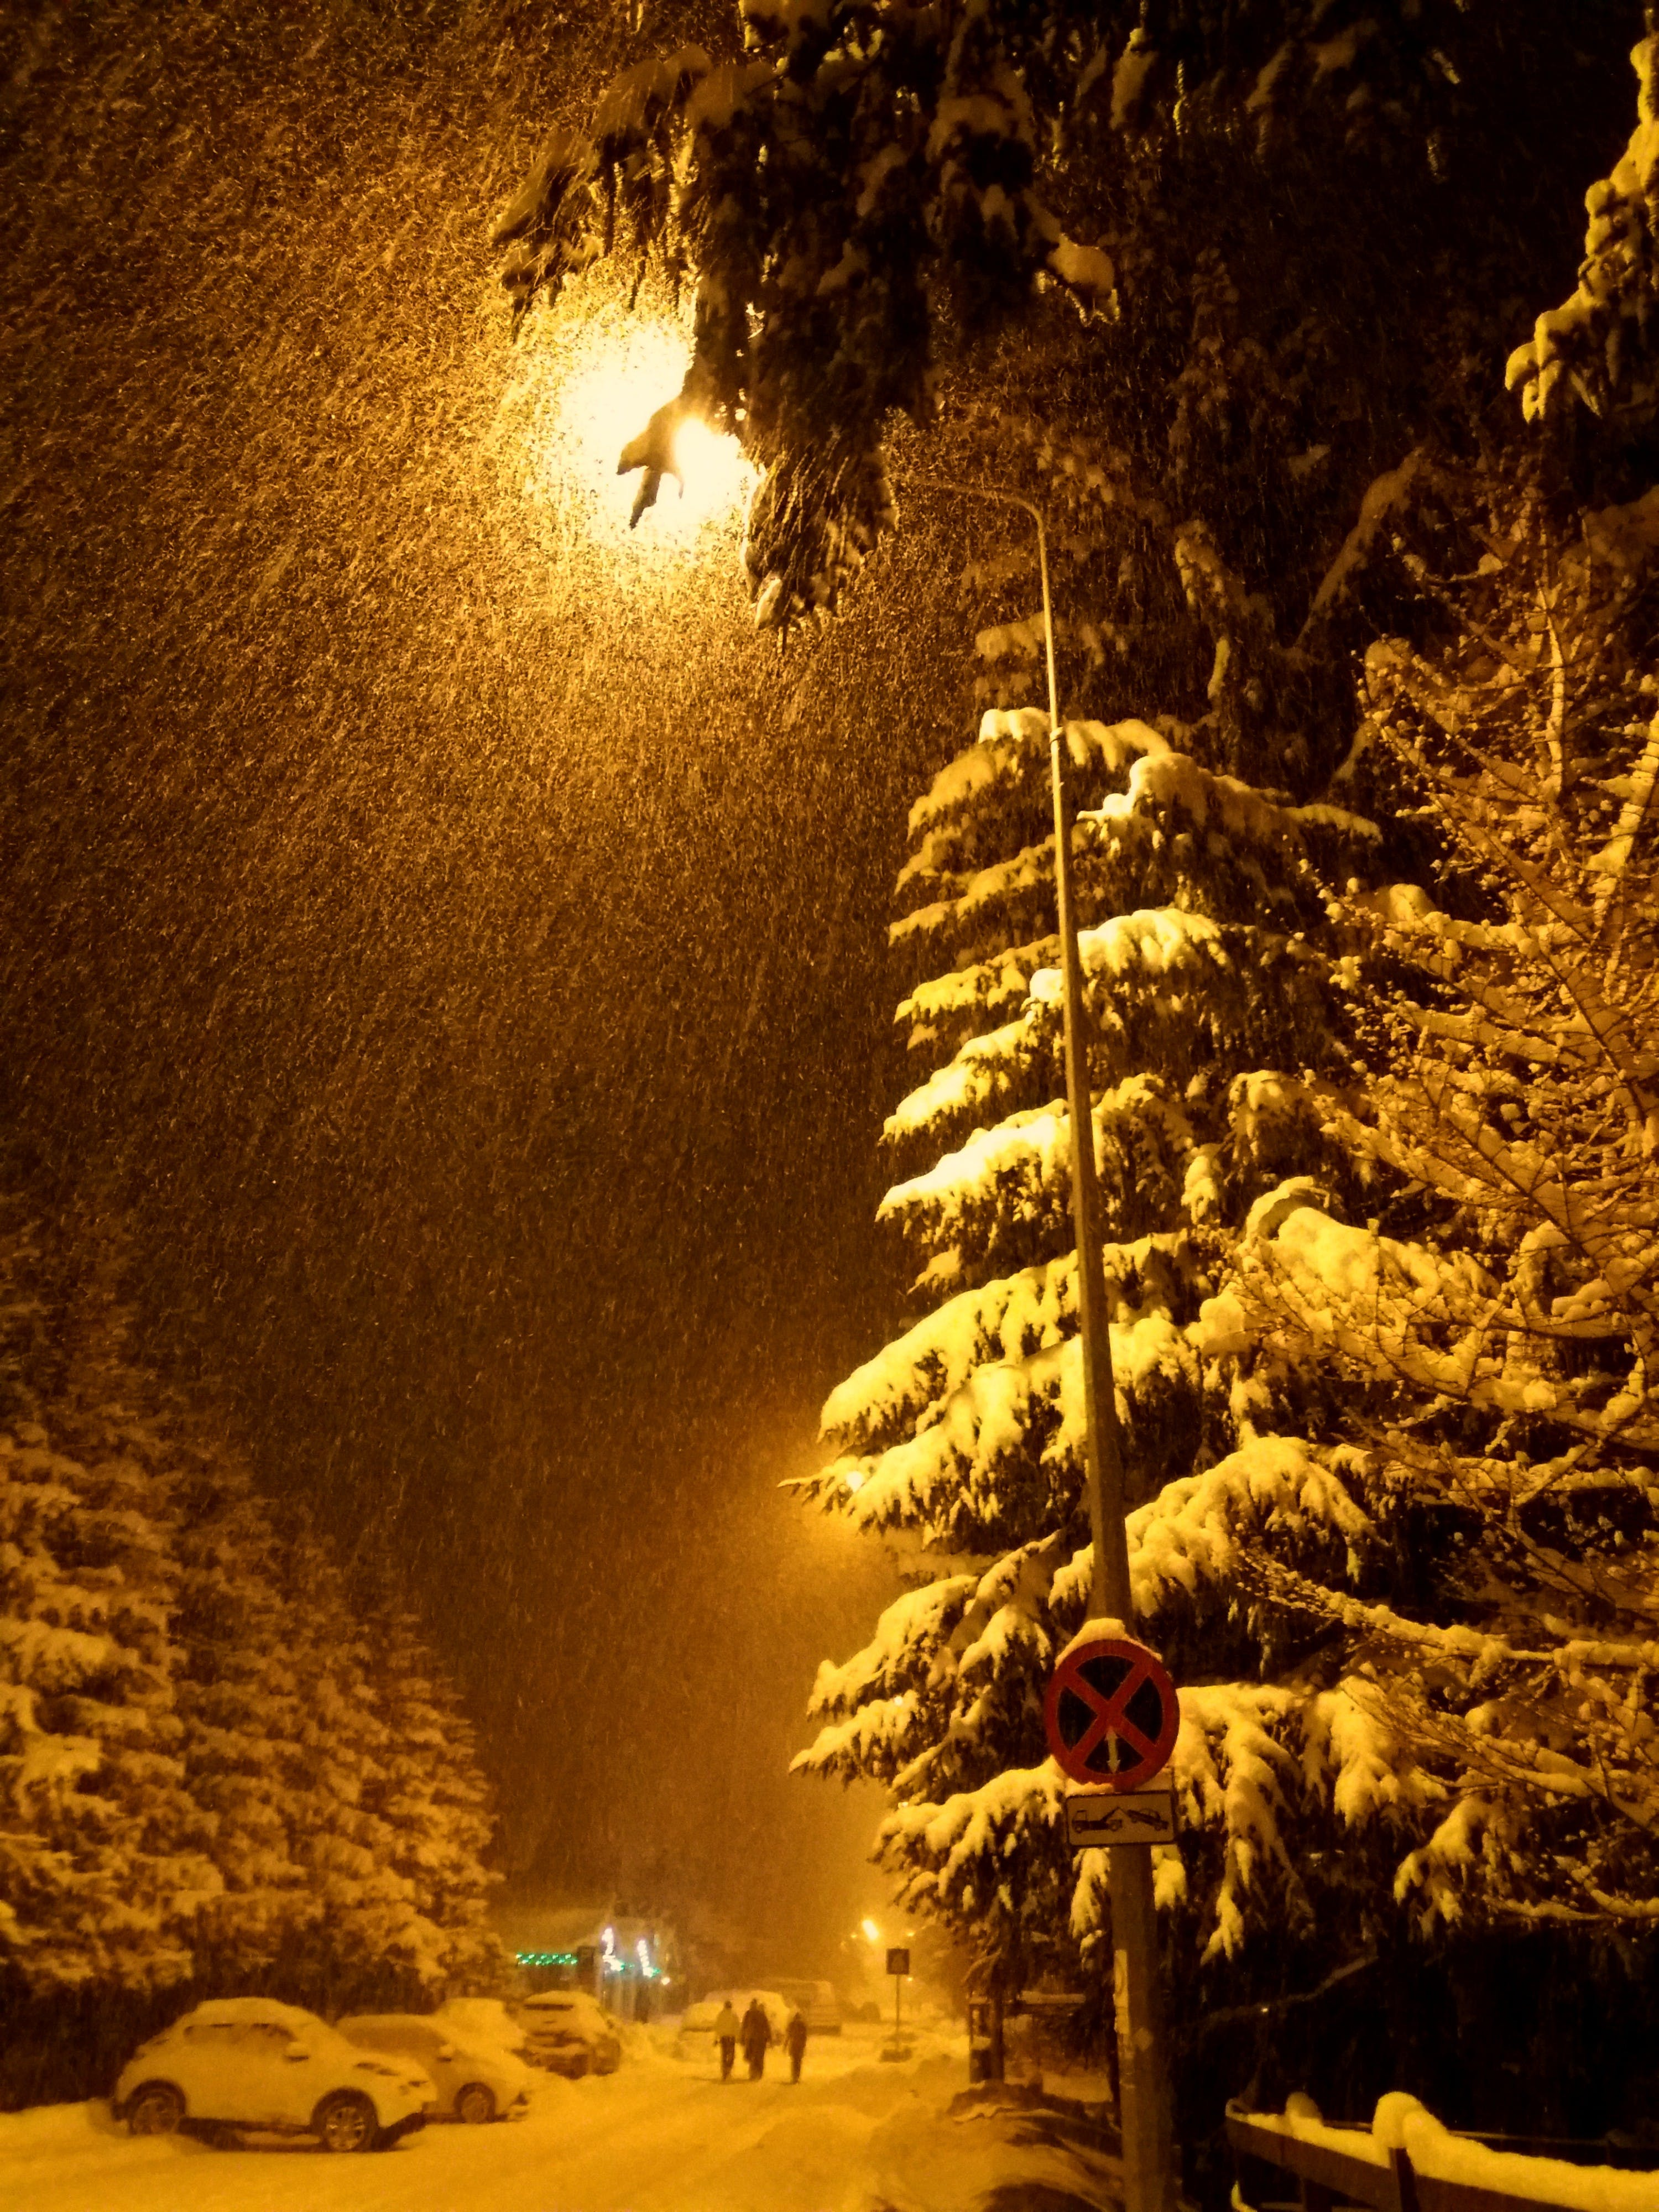 Free stock photo of winter, fir trees, heavy snow, heavy snow in the night